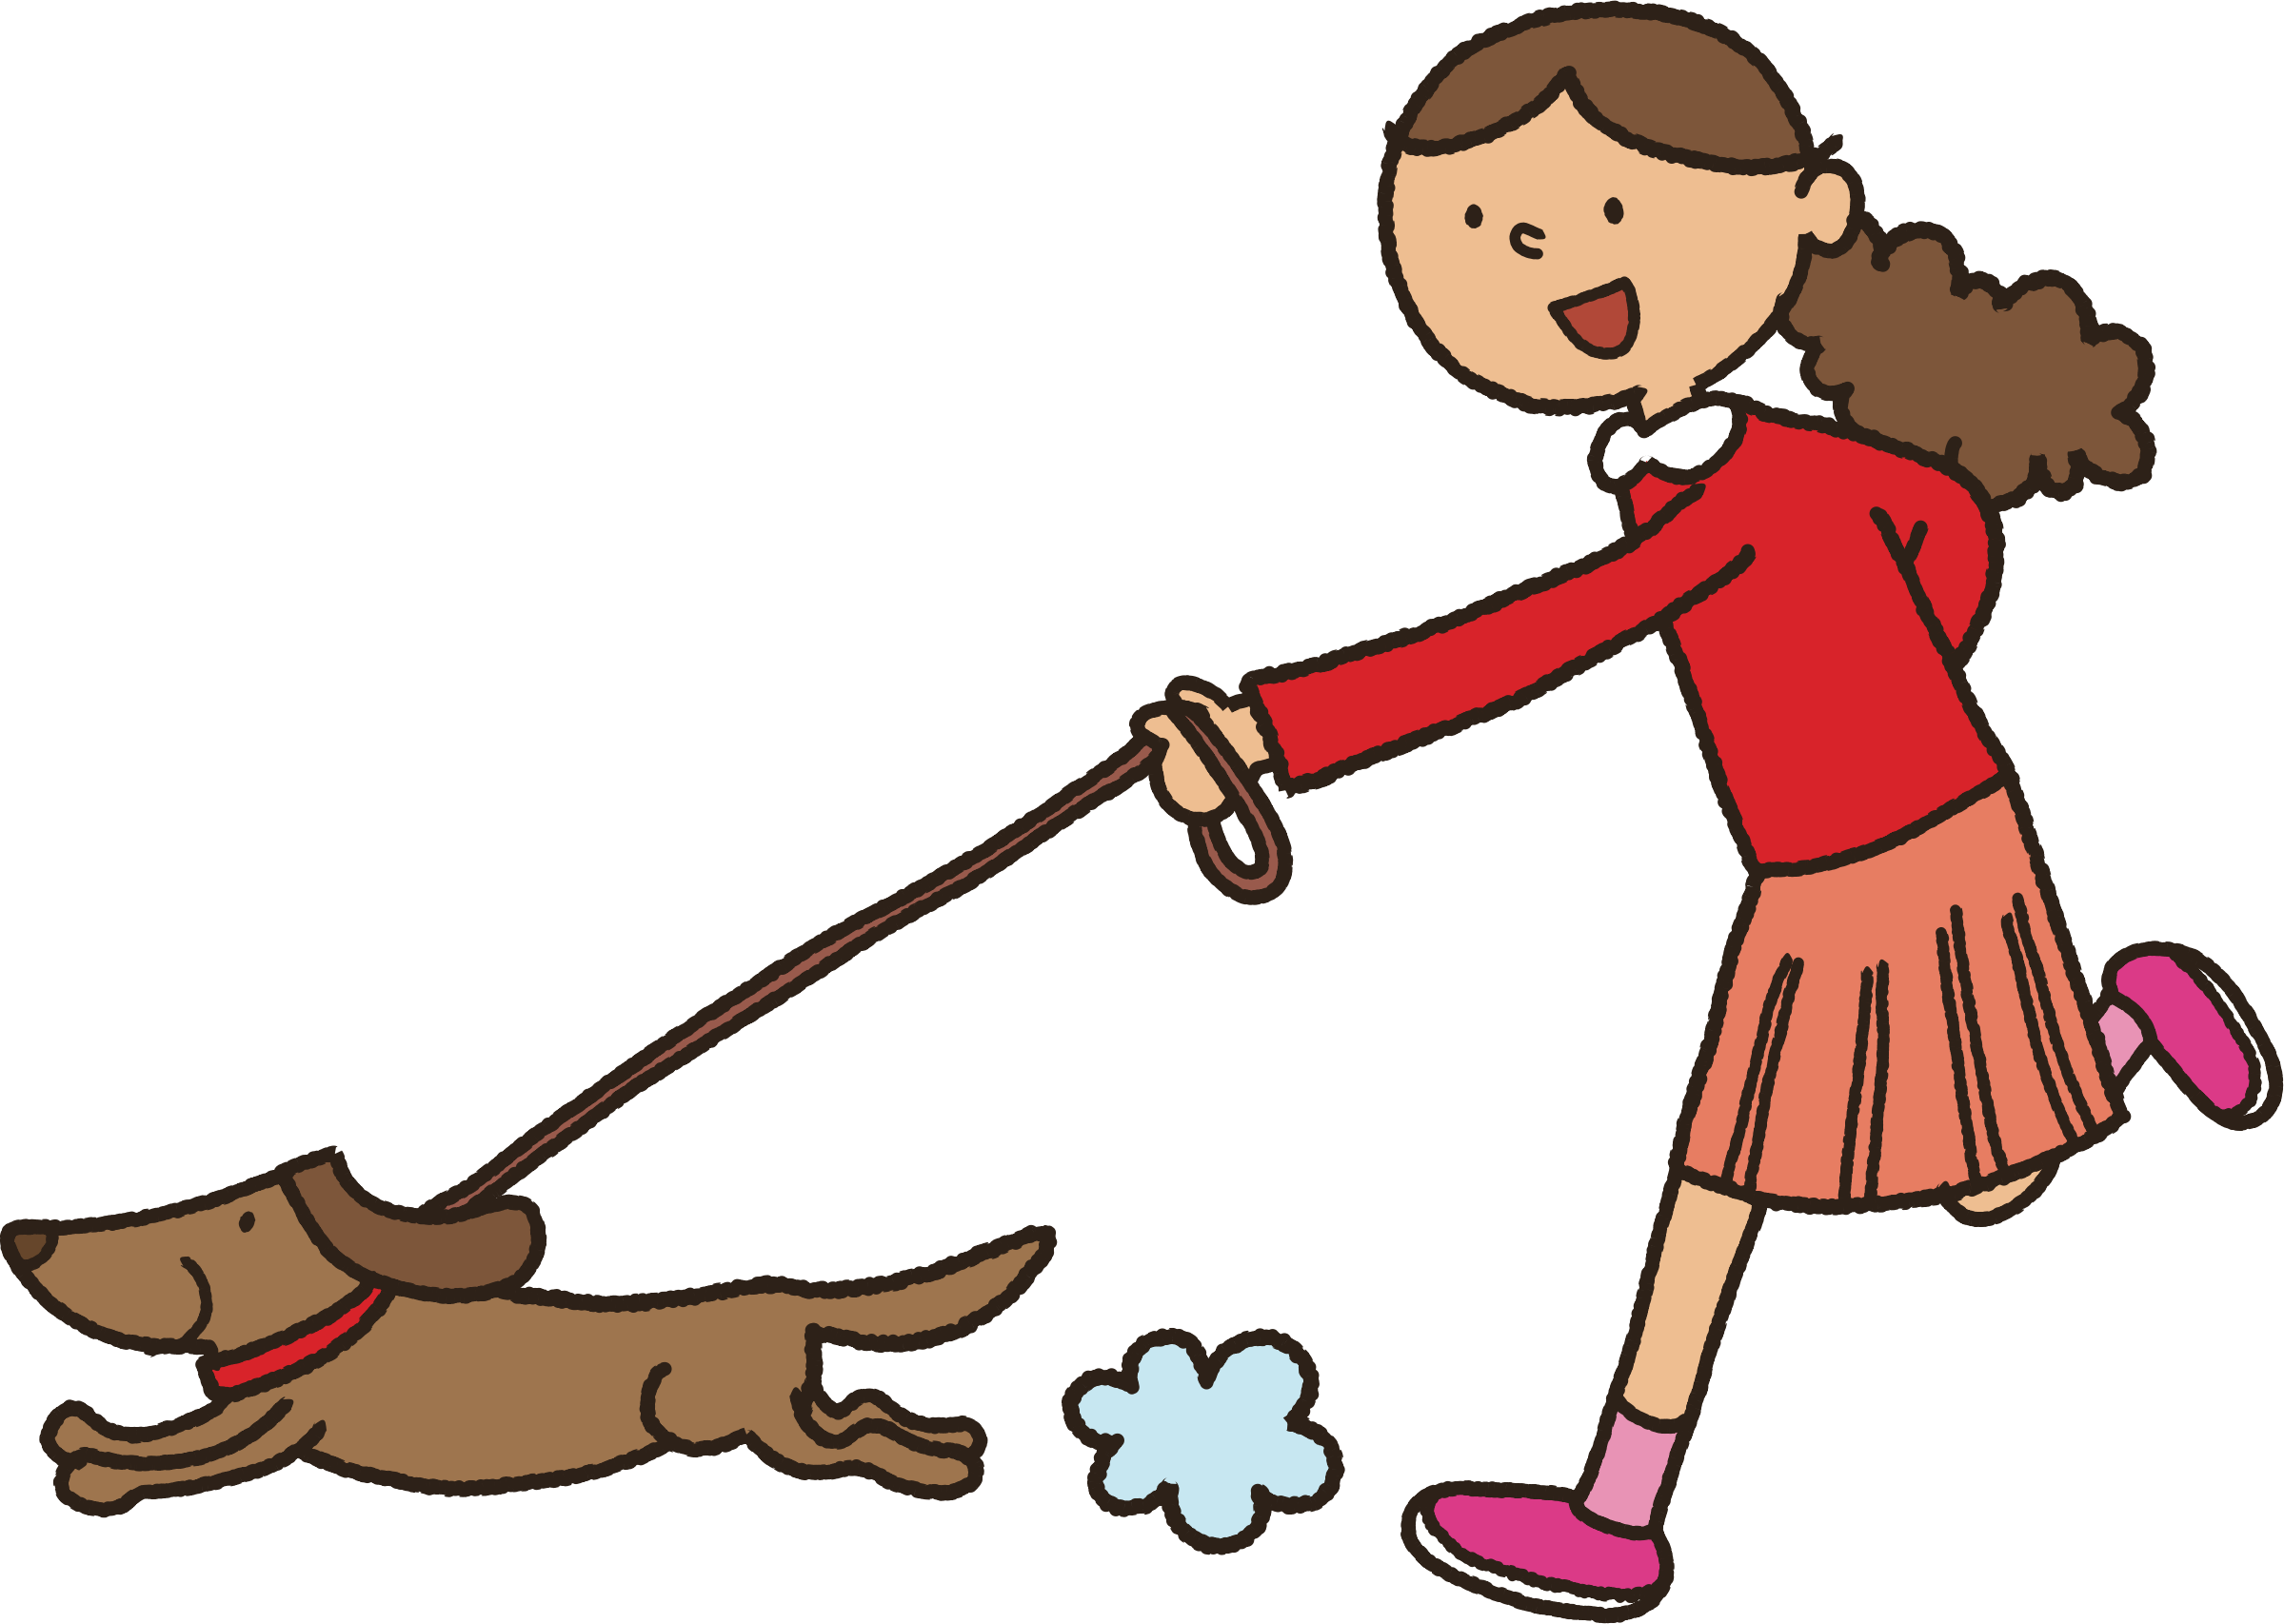 Walk the dog clipart picture royalty free stock Clipart - Walking the Dog picture royalty free stock